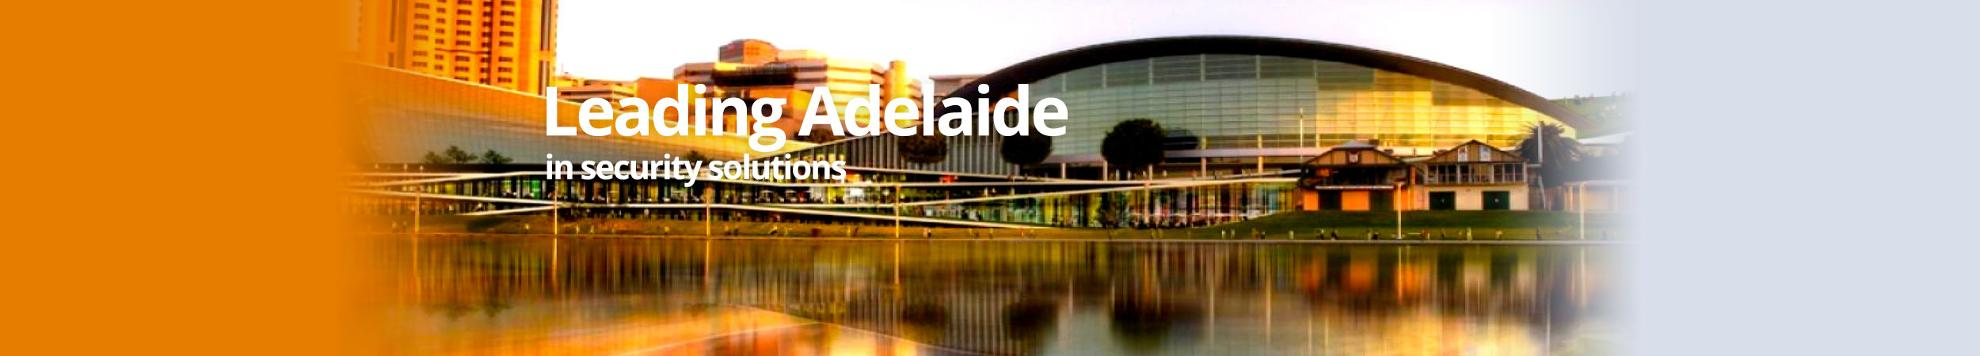 Leading Adelaide in Security Solutions